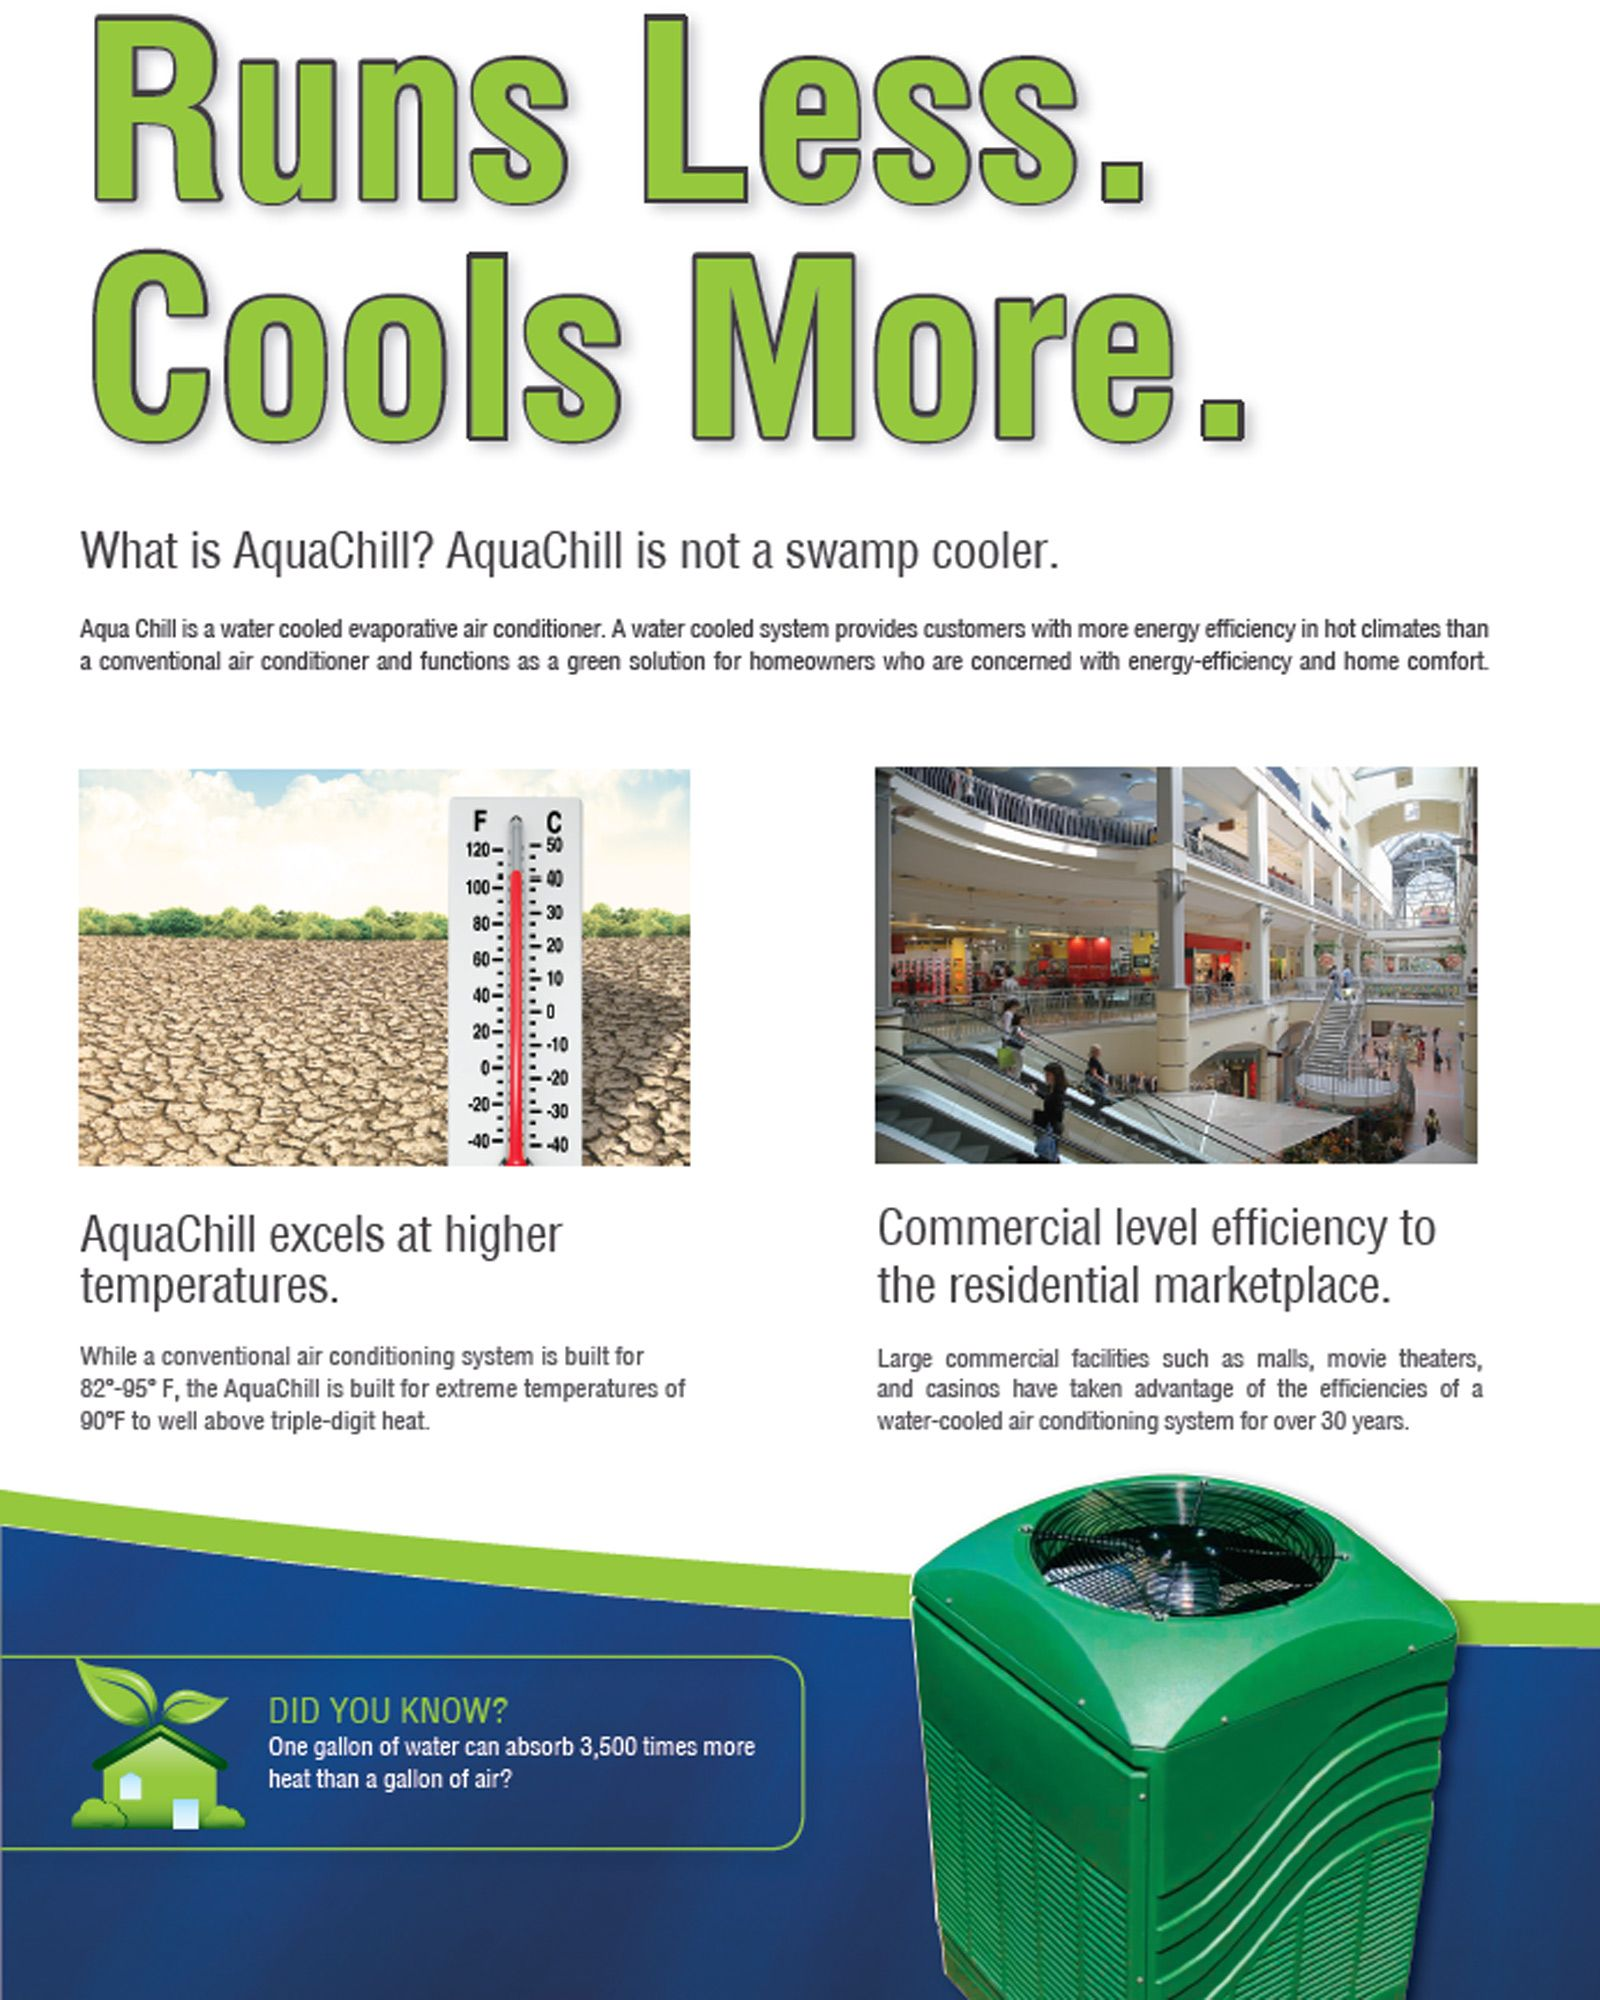 For A Free Quote On The Aquachill Call 916 388 0808 Or Go Directly To The Manufacturer In Sacramento At Www Aqua C Green Solutions Swamp Cooler Water Cooling